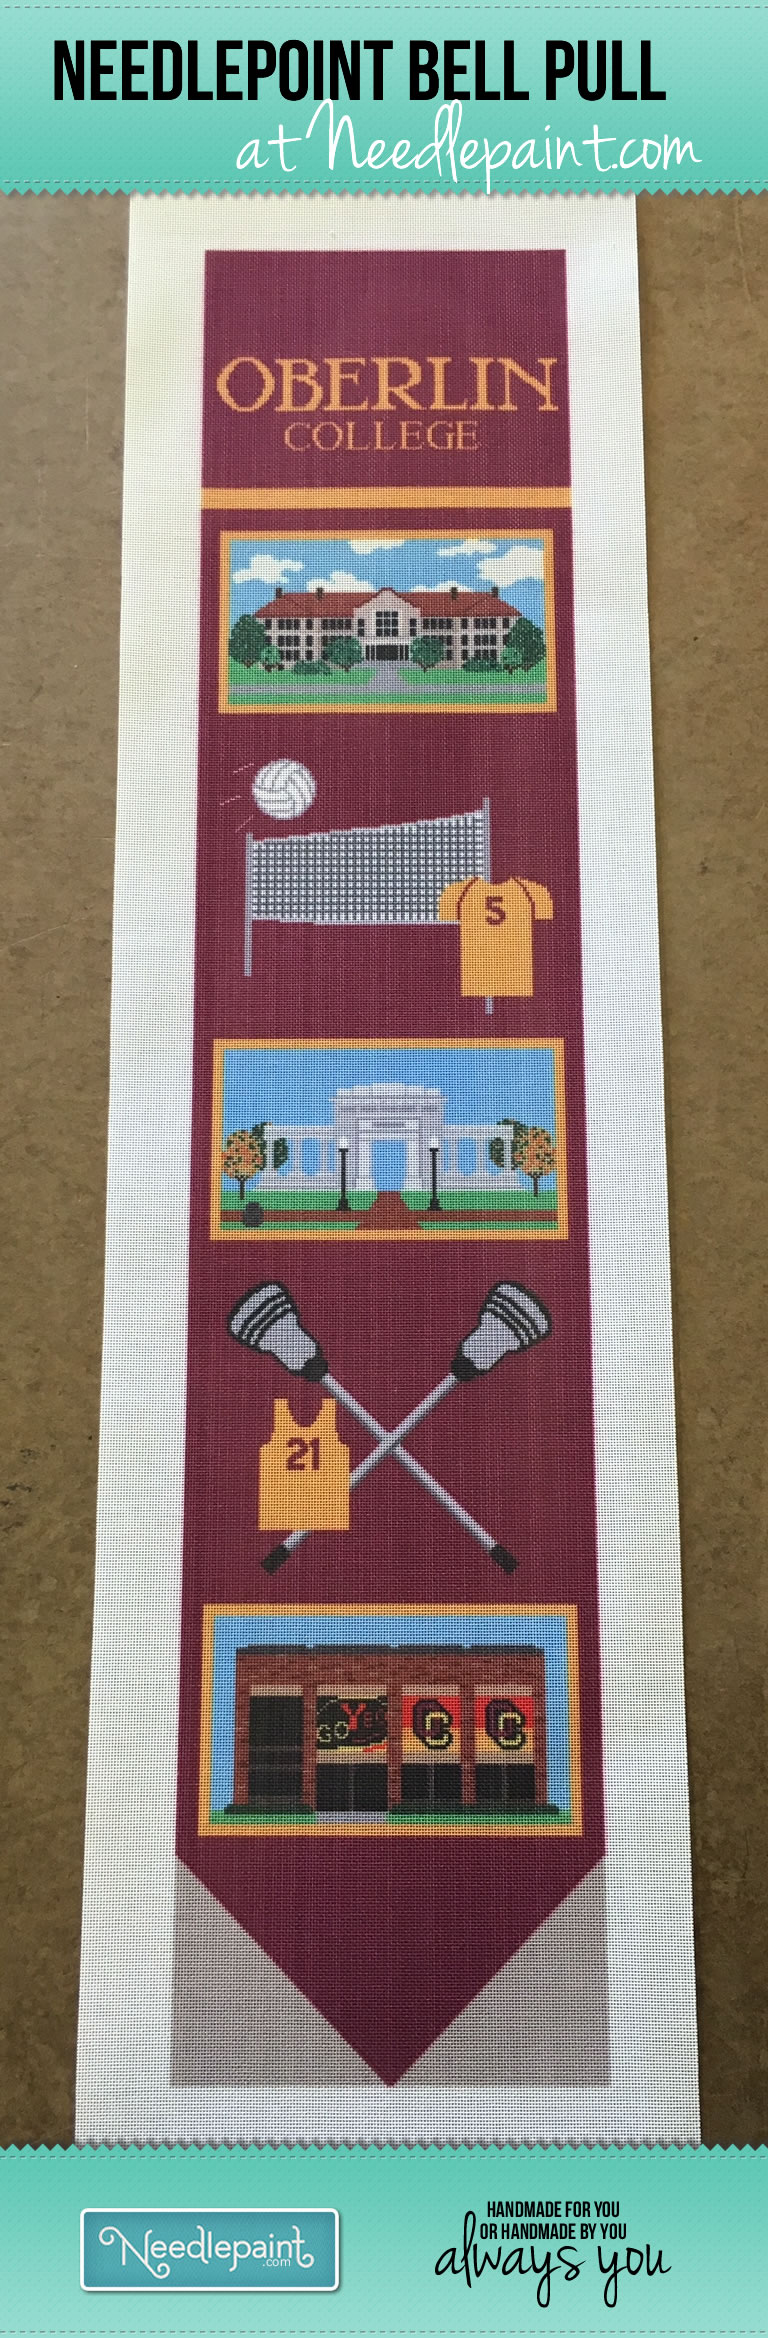 Custom Needlepoint College Bell Pull Oberlin College